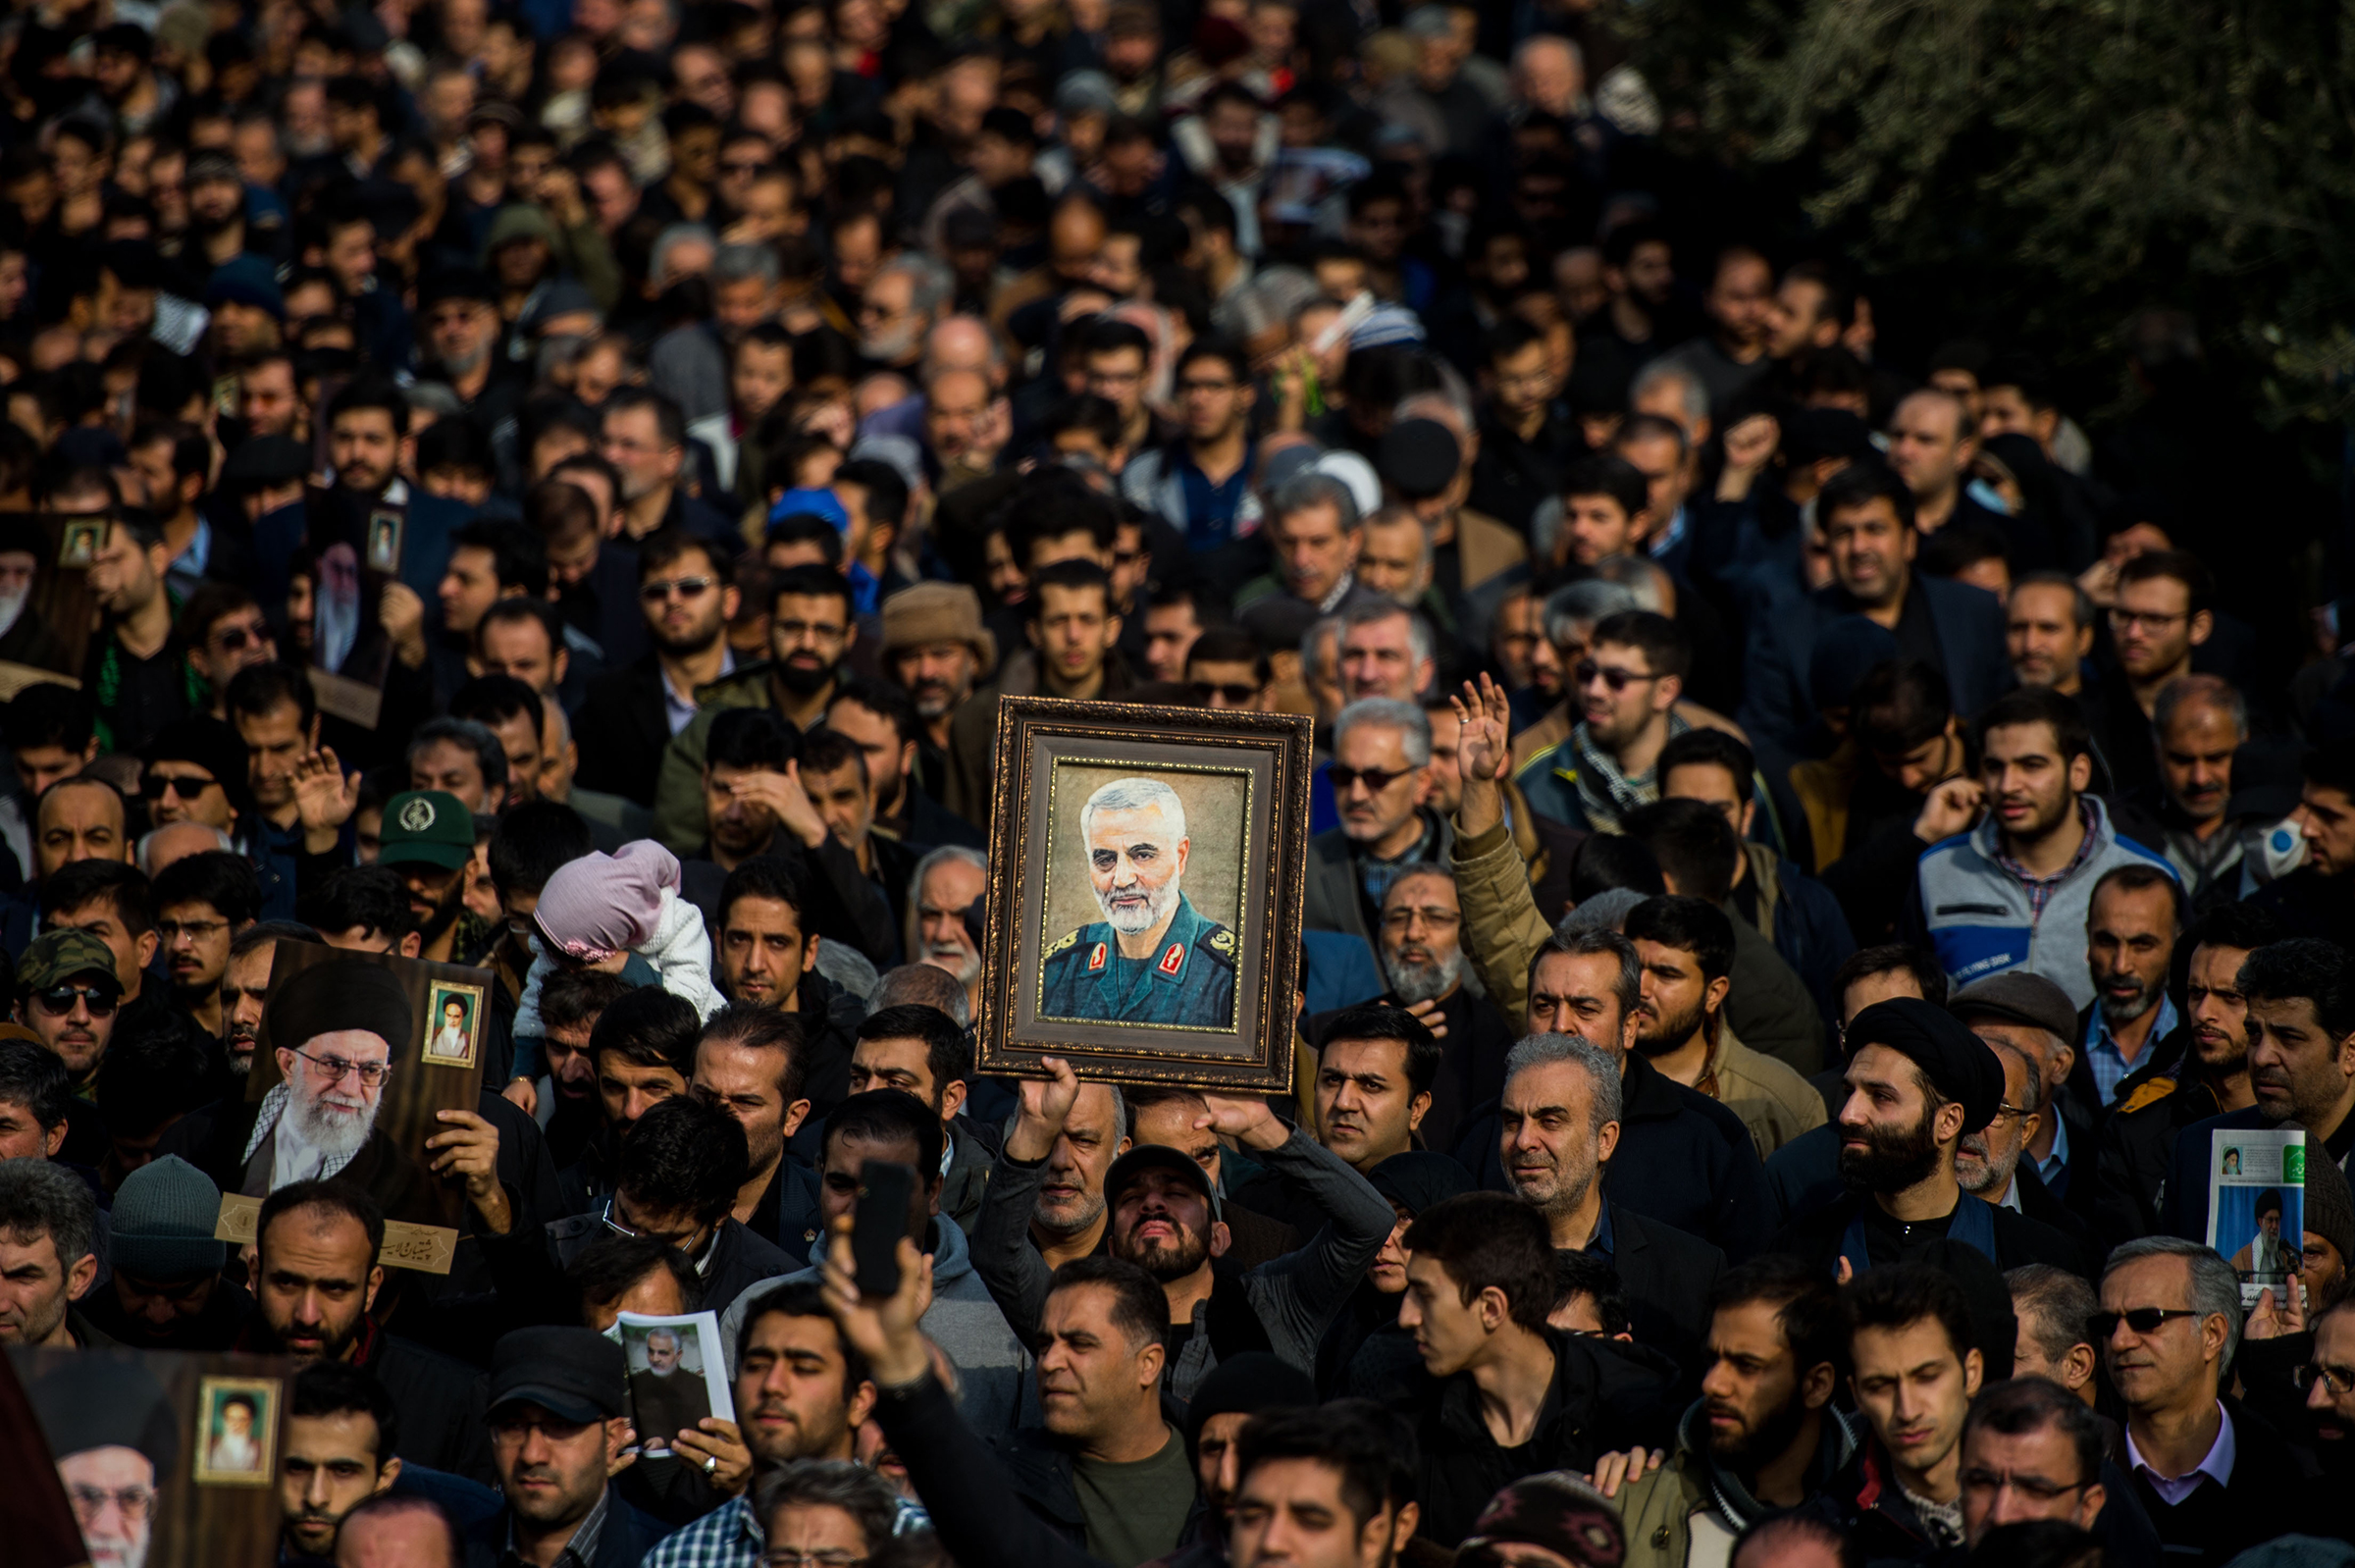 Protesters hold up a framed portrait of Qasem Soleimani, the Iranian commander killed in a U.S. drone strike in Baghdad, during a demonstration in Tehran, Iran, on Jan. 3, 2020.